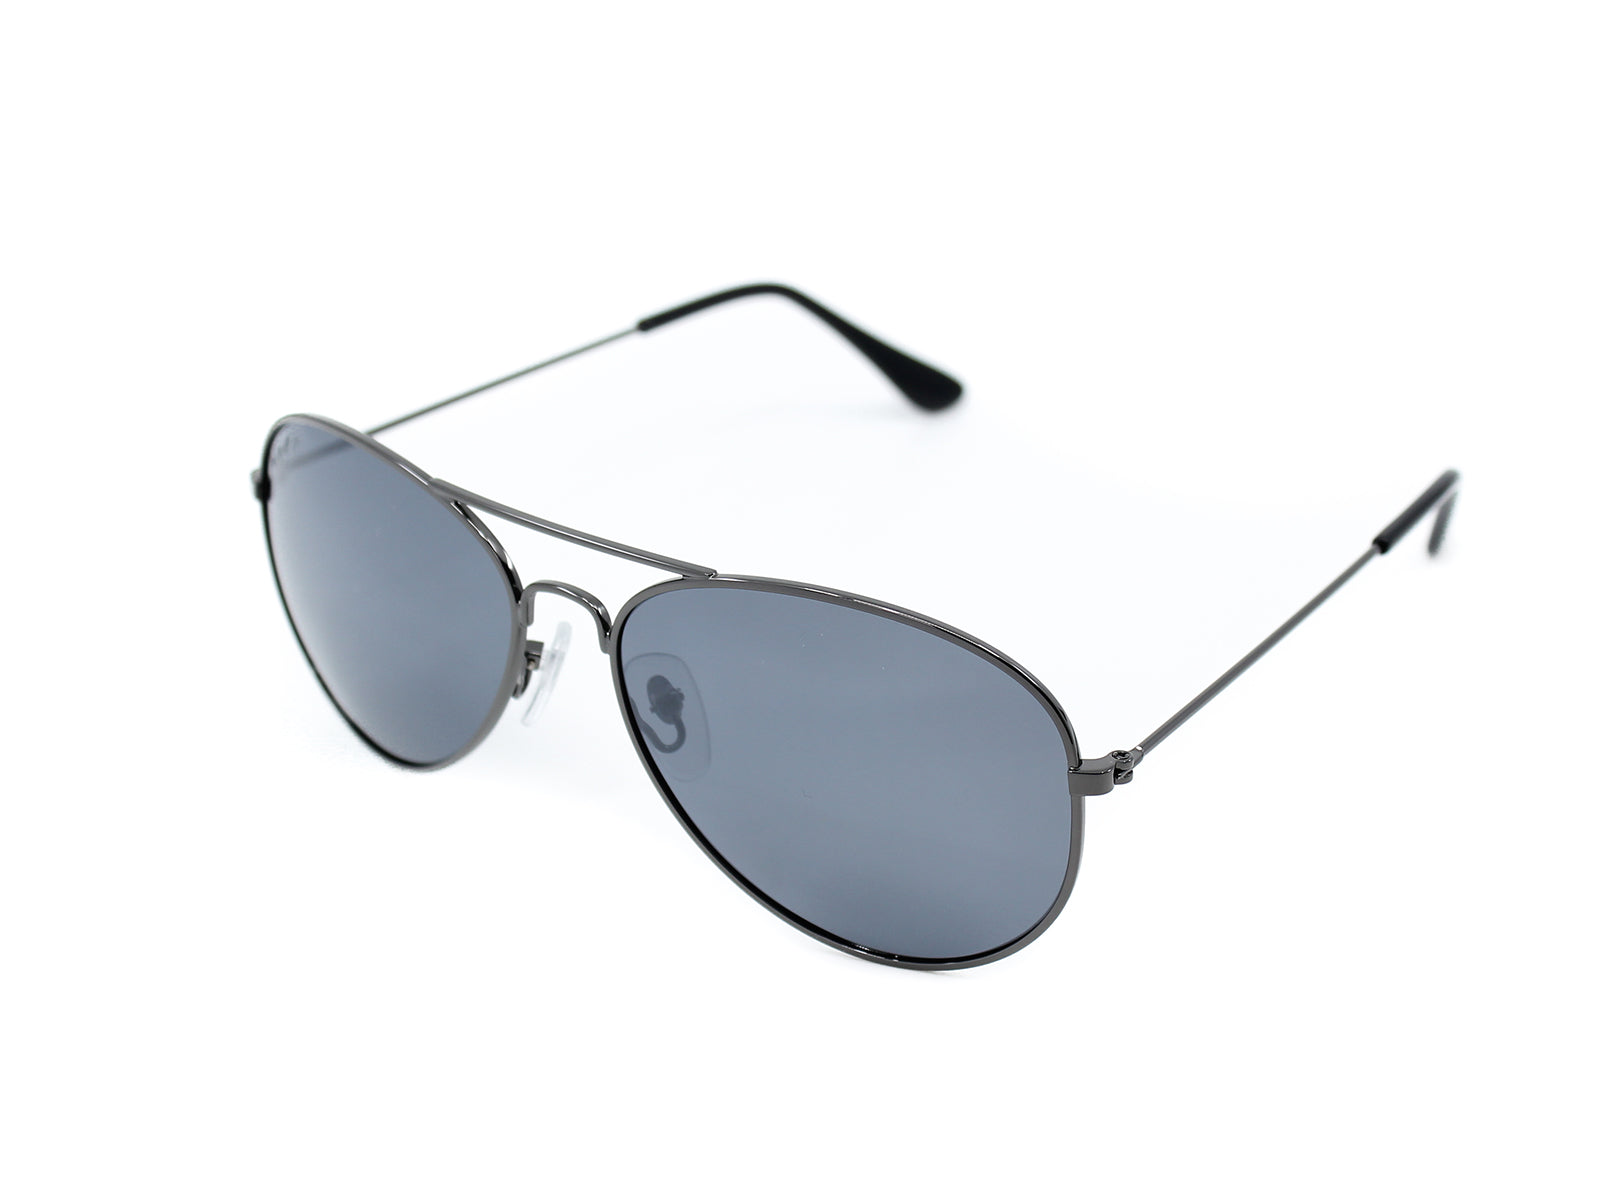 Mavericks - Ghosts: Gunmetal Gray / Smoke Polarized